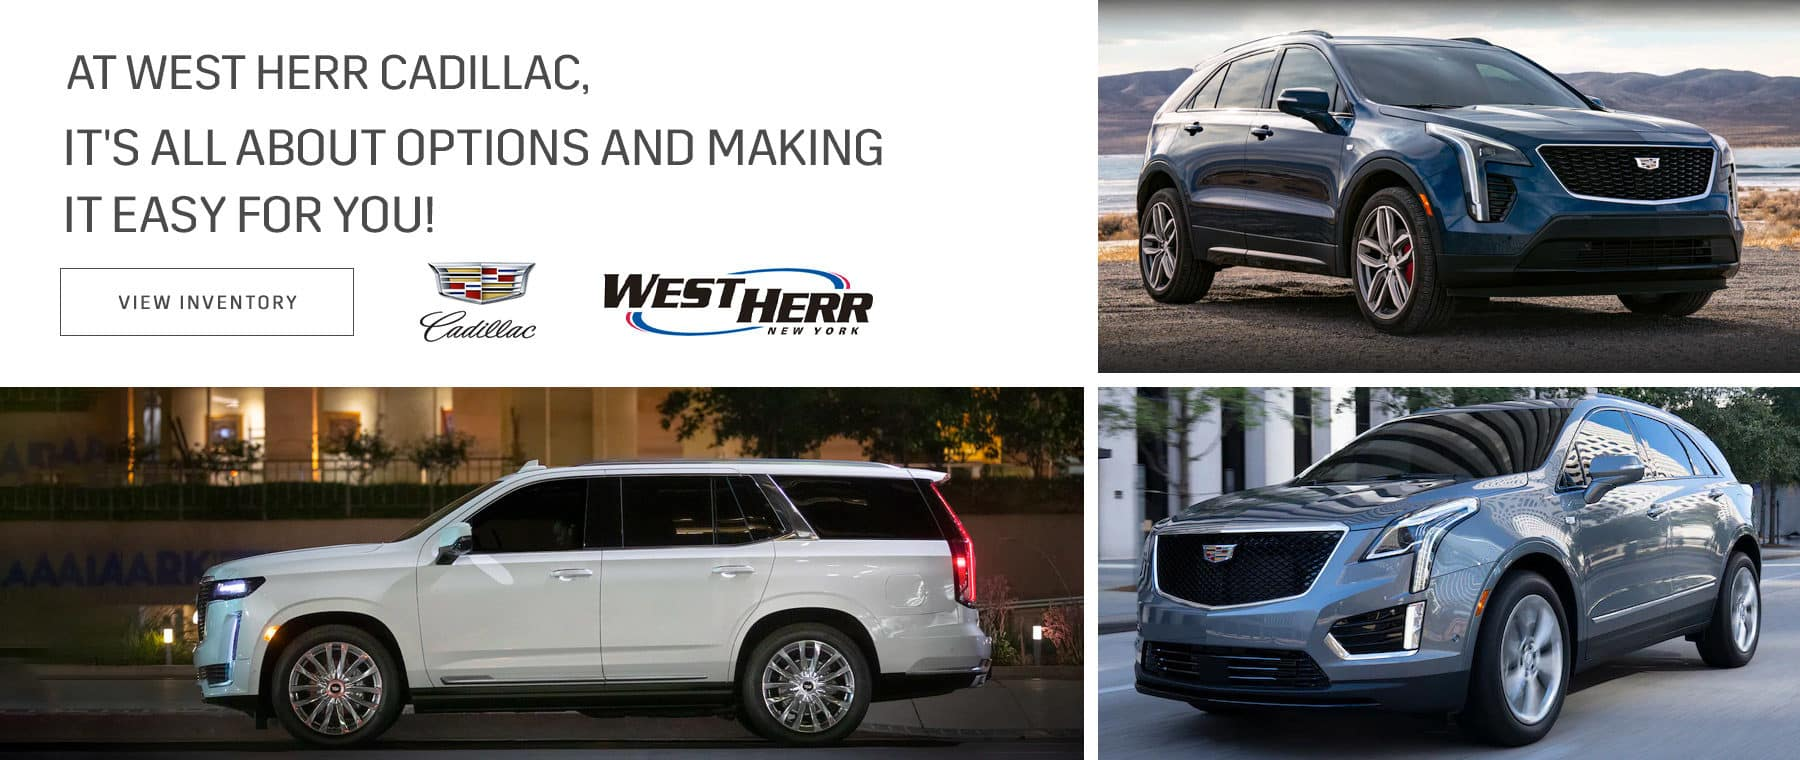 At West Herr Cadillac, it's all about options and making it easy for you!